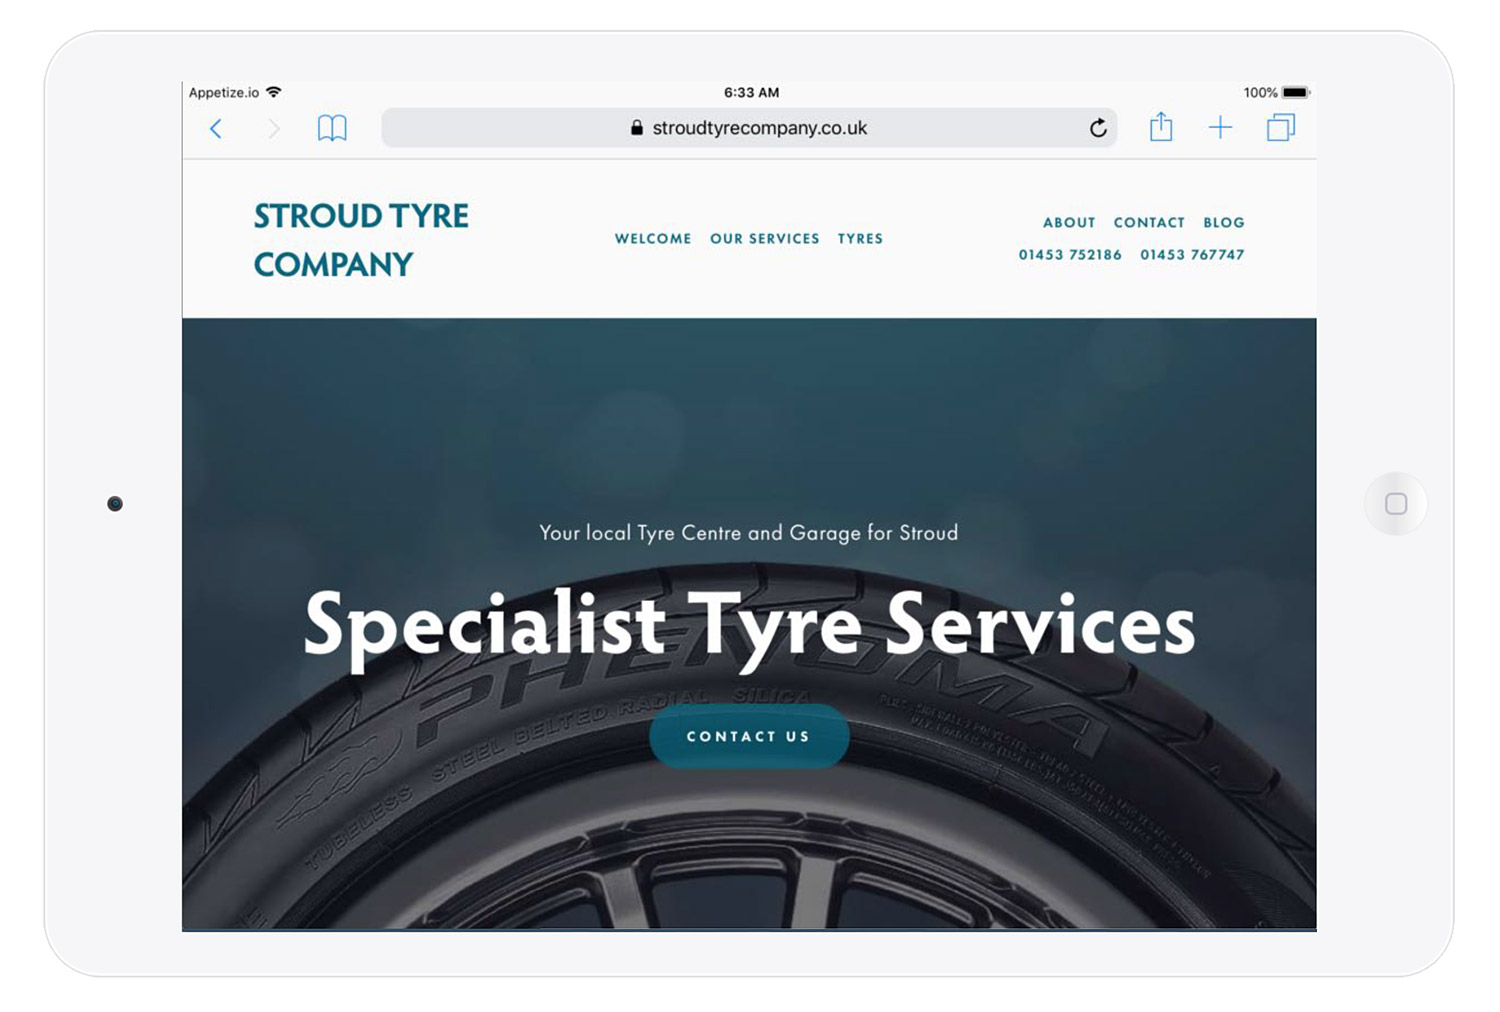 stroud-tyre-company-squarespace-website-design-on-ipad-by-jason-conway-web-designer-gloucestershire-1500pxl.jpg